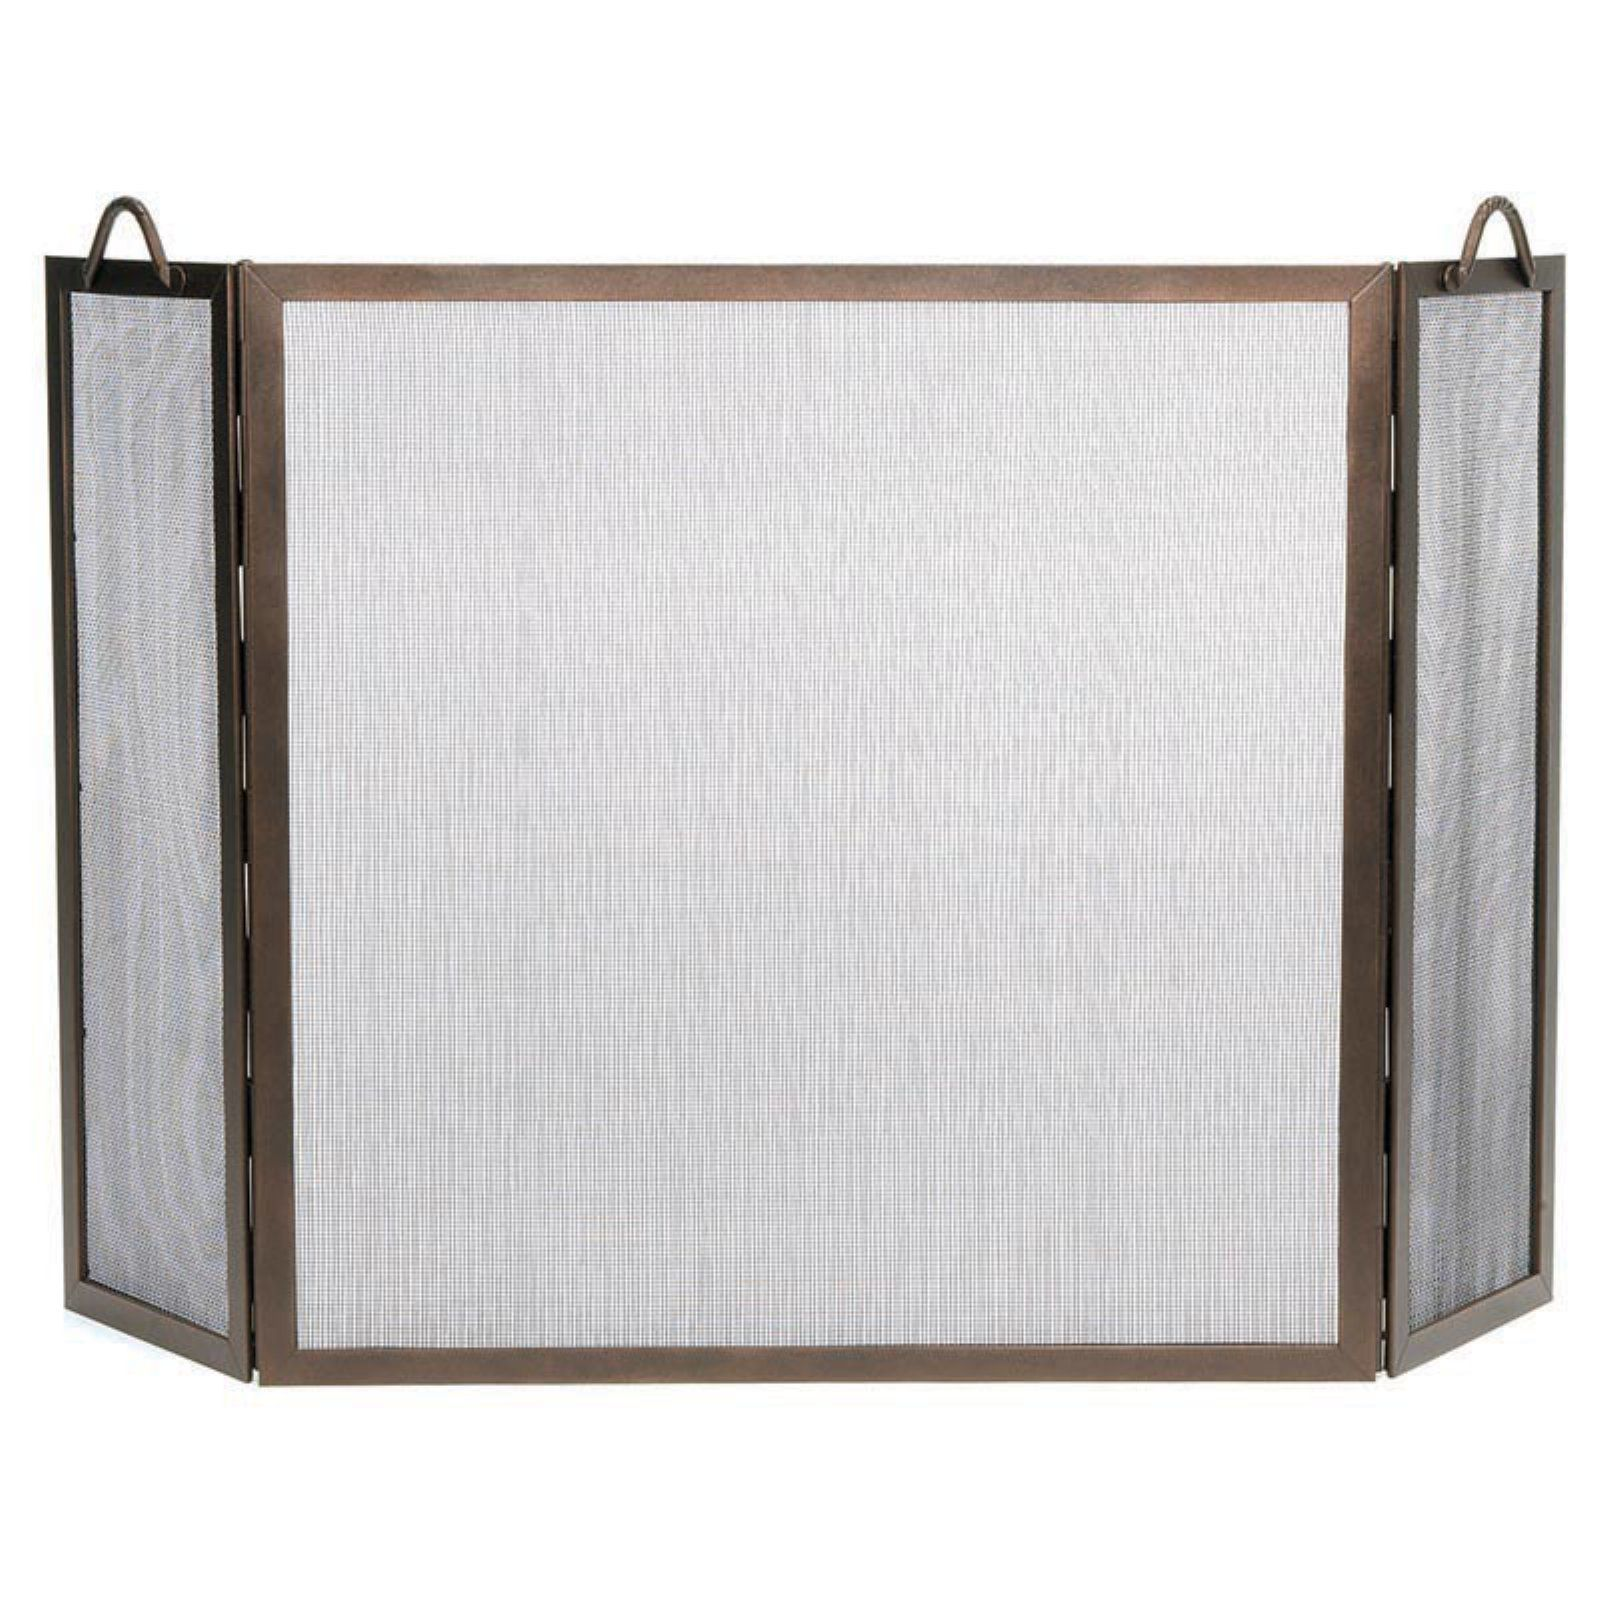 Pilgrim Fireplace Screens Fresh 2 Door Steel Flat Guard Fireplace Fire Screen Black Plow